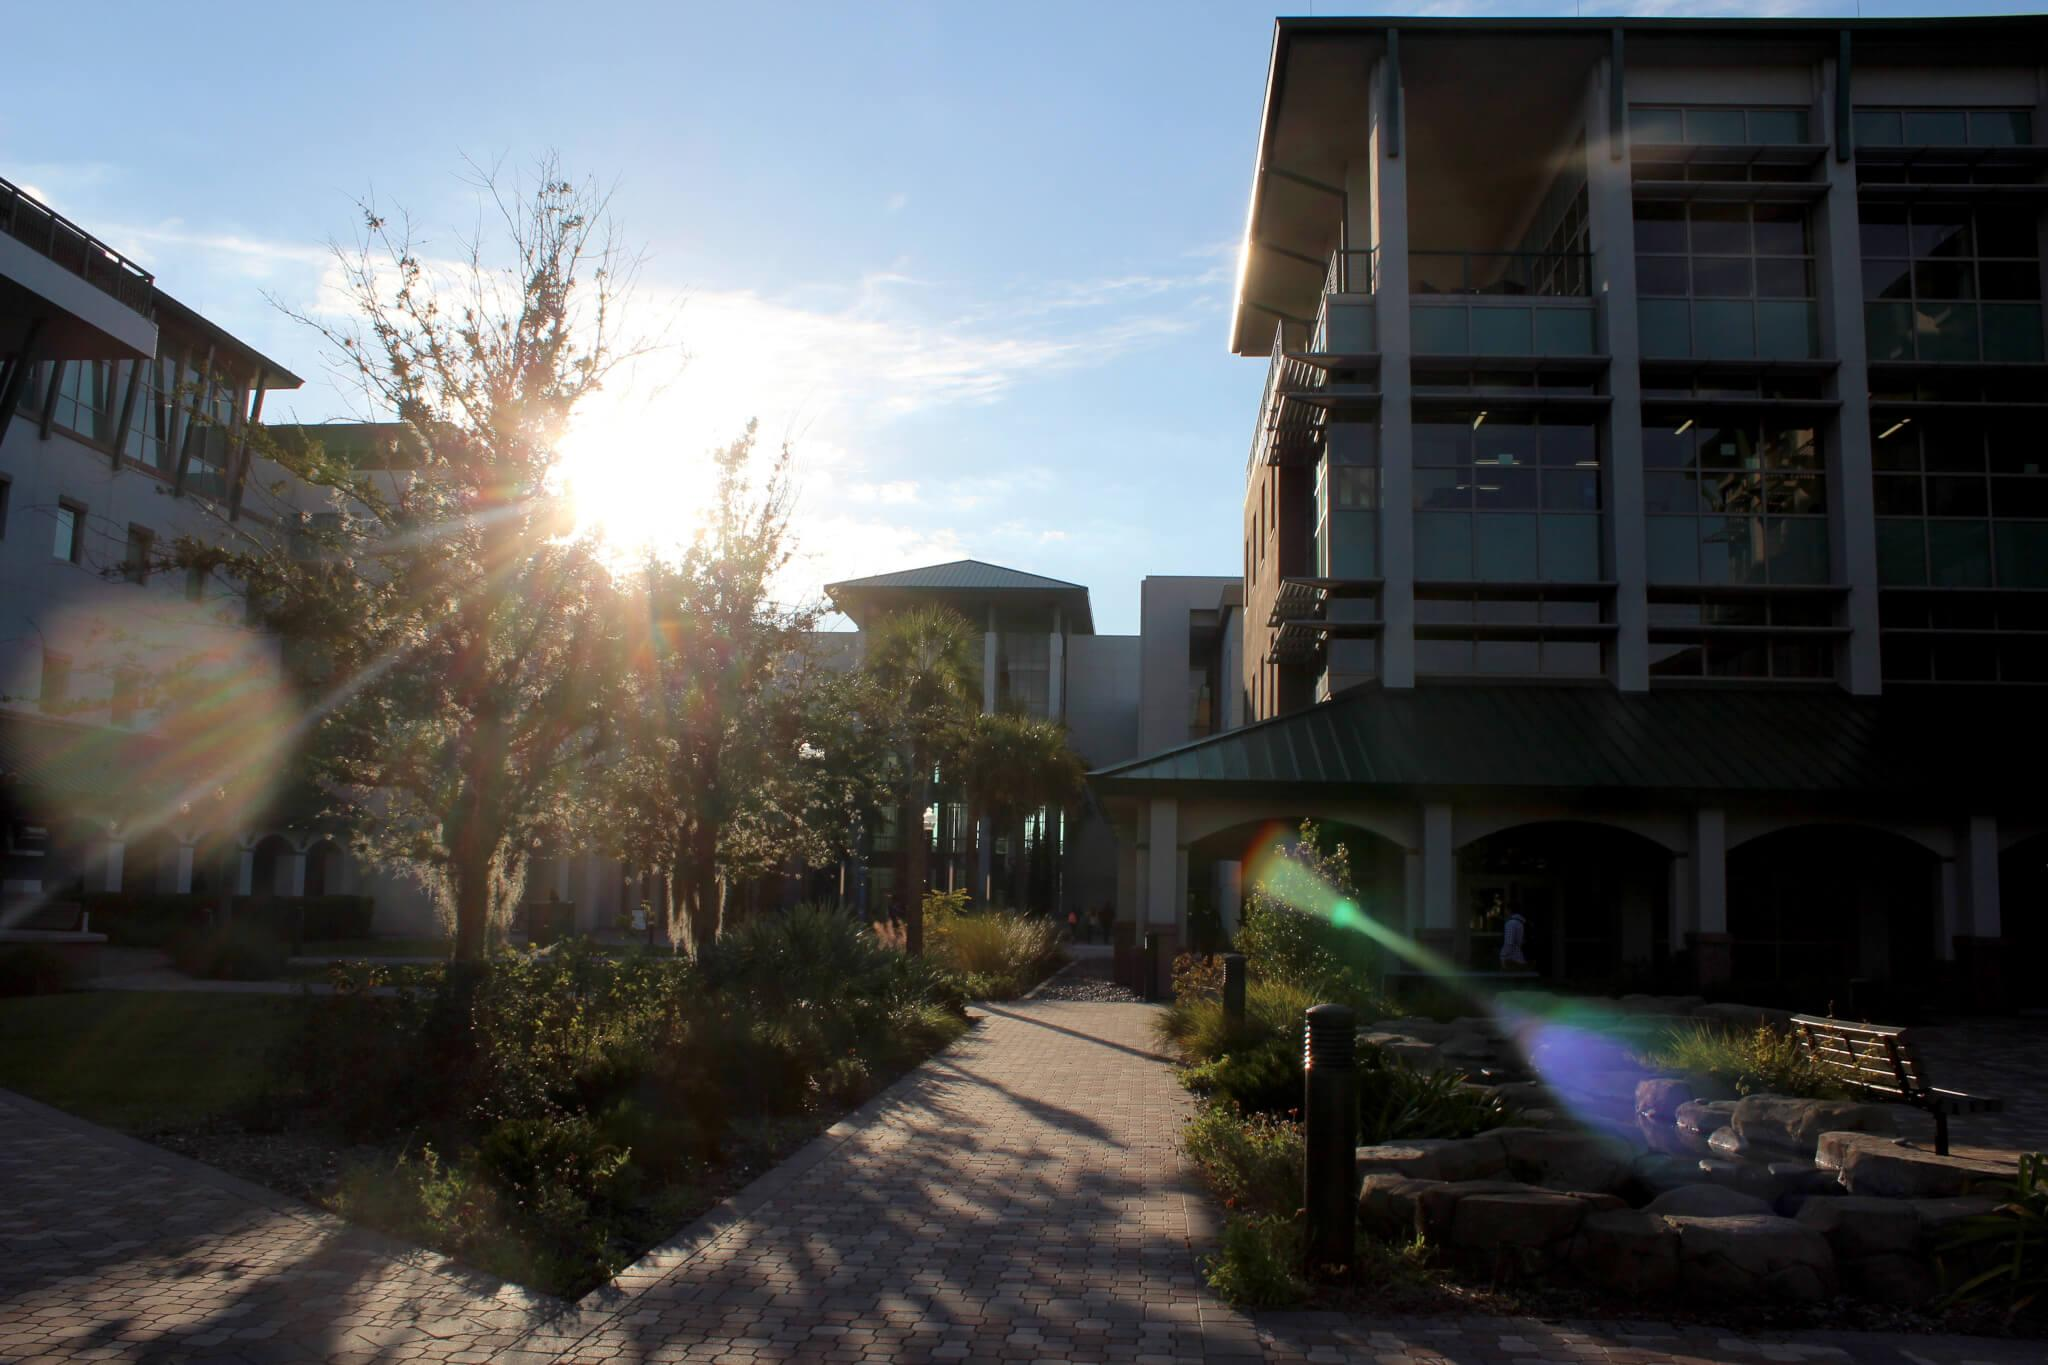 FGCU News: A Year in Review